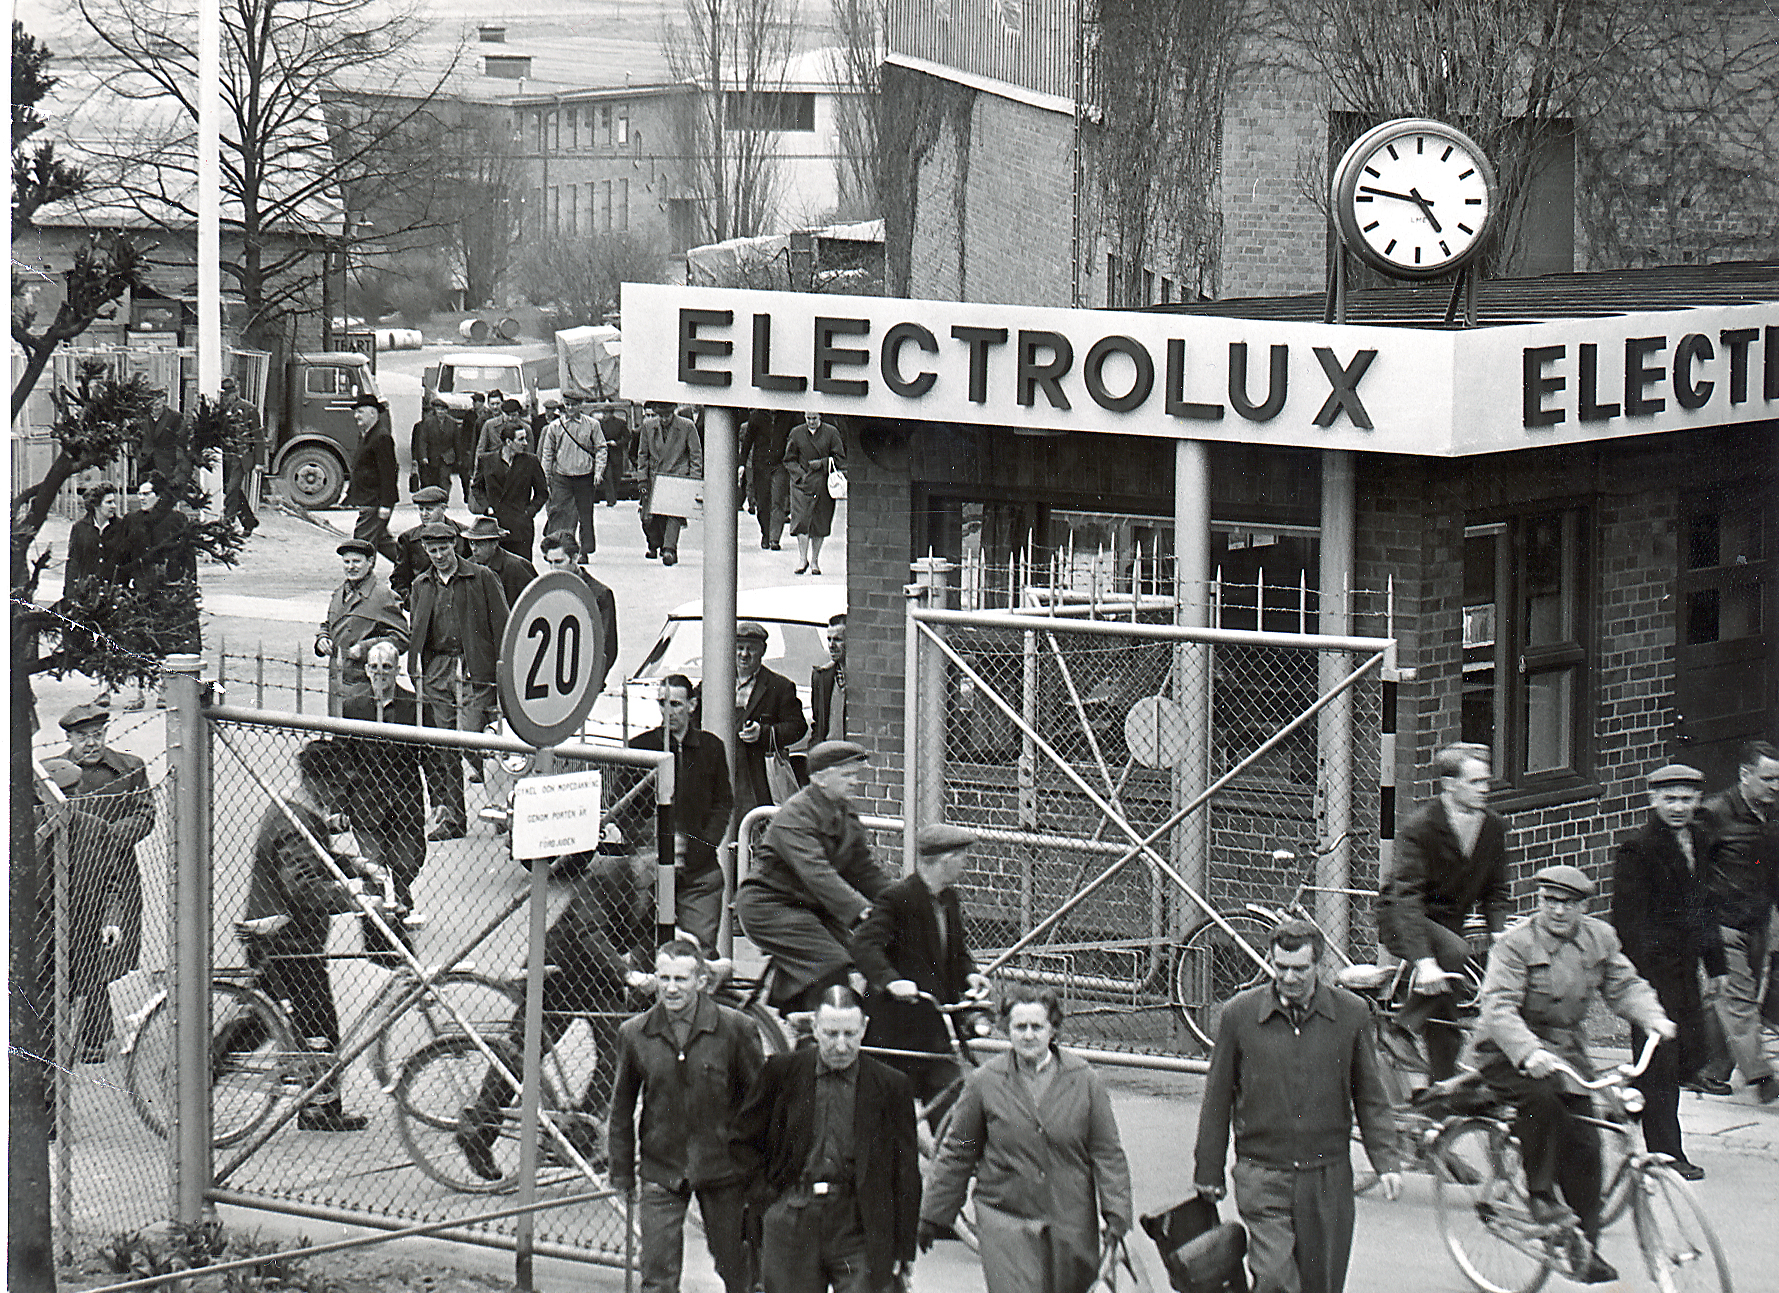 Electrolux, Dometic, Company, Factory, Work, Workers, Employees, Black and White, History, Old, Bicycle, Bike, 1925, Outside